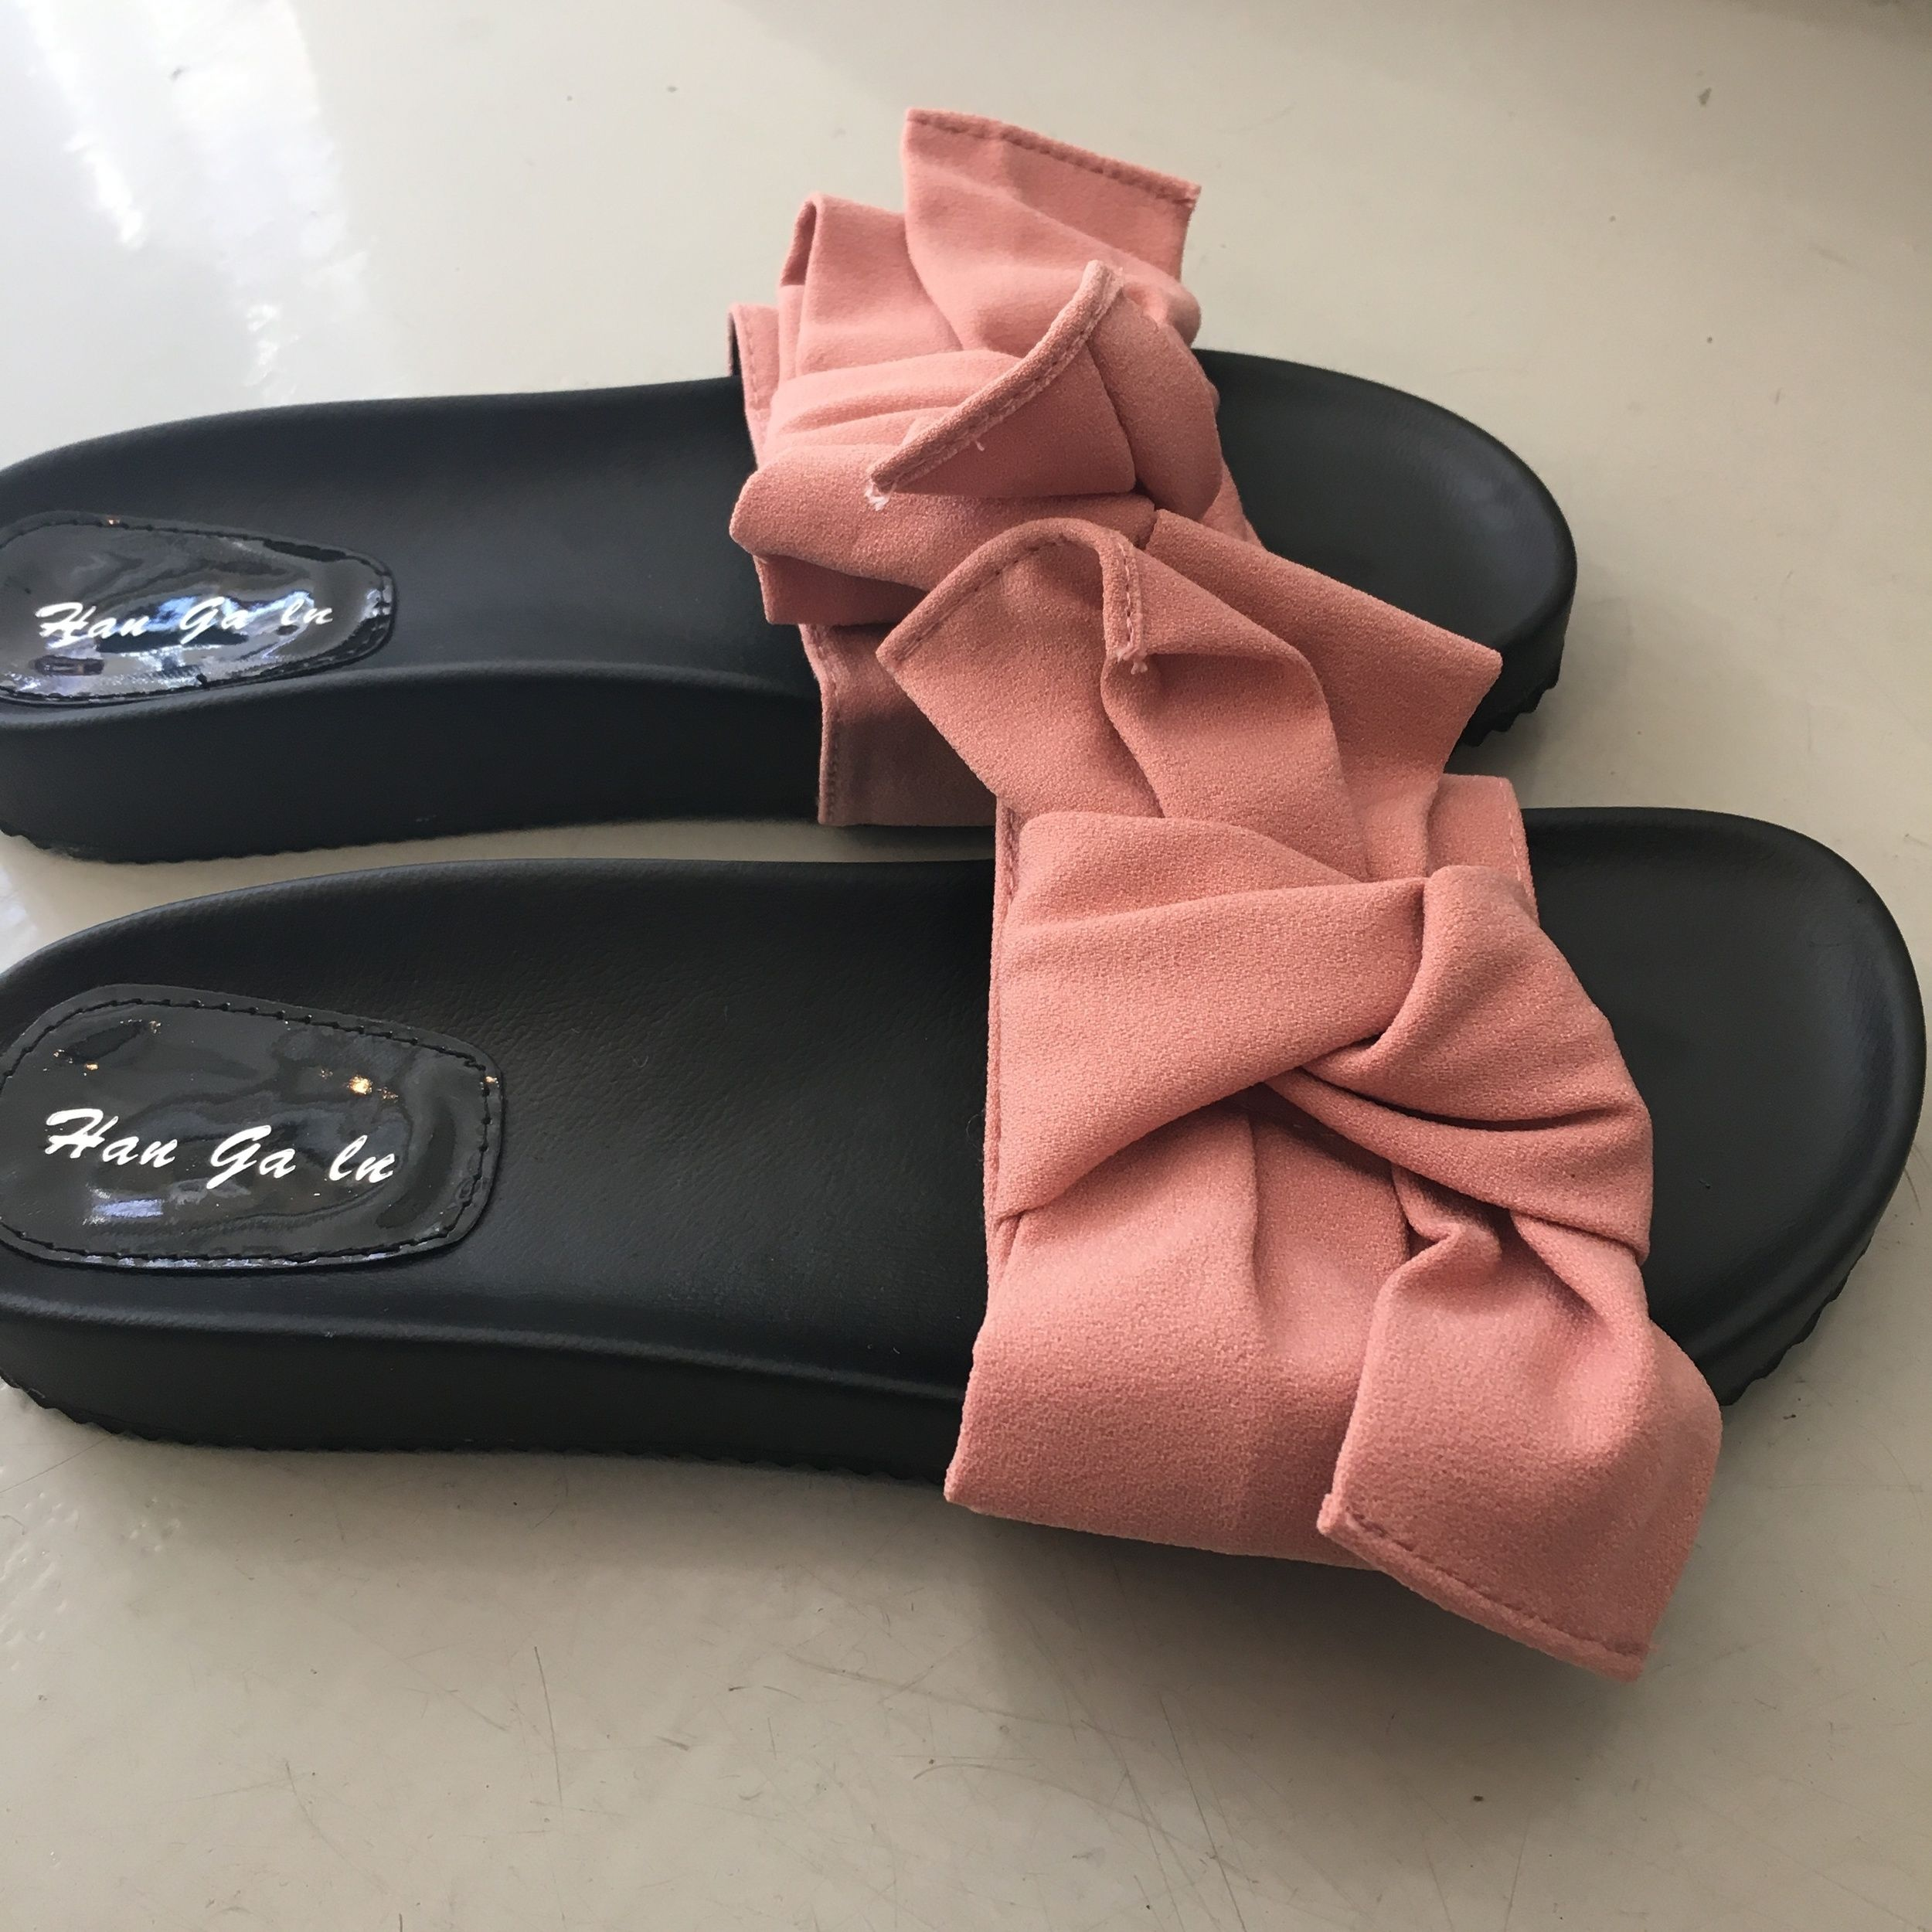 cutest bow slide sandals  oversize bow detail  true to size